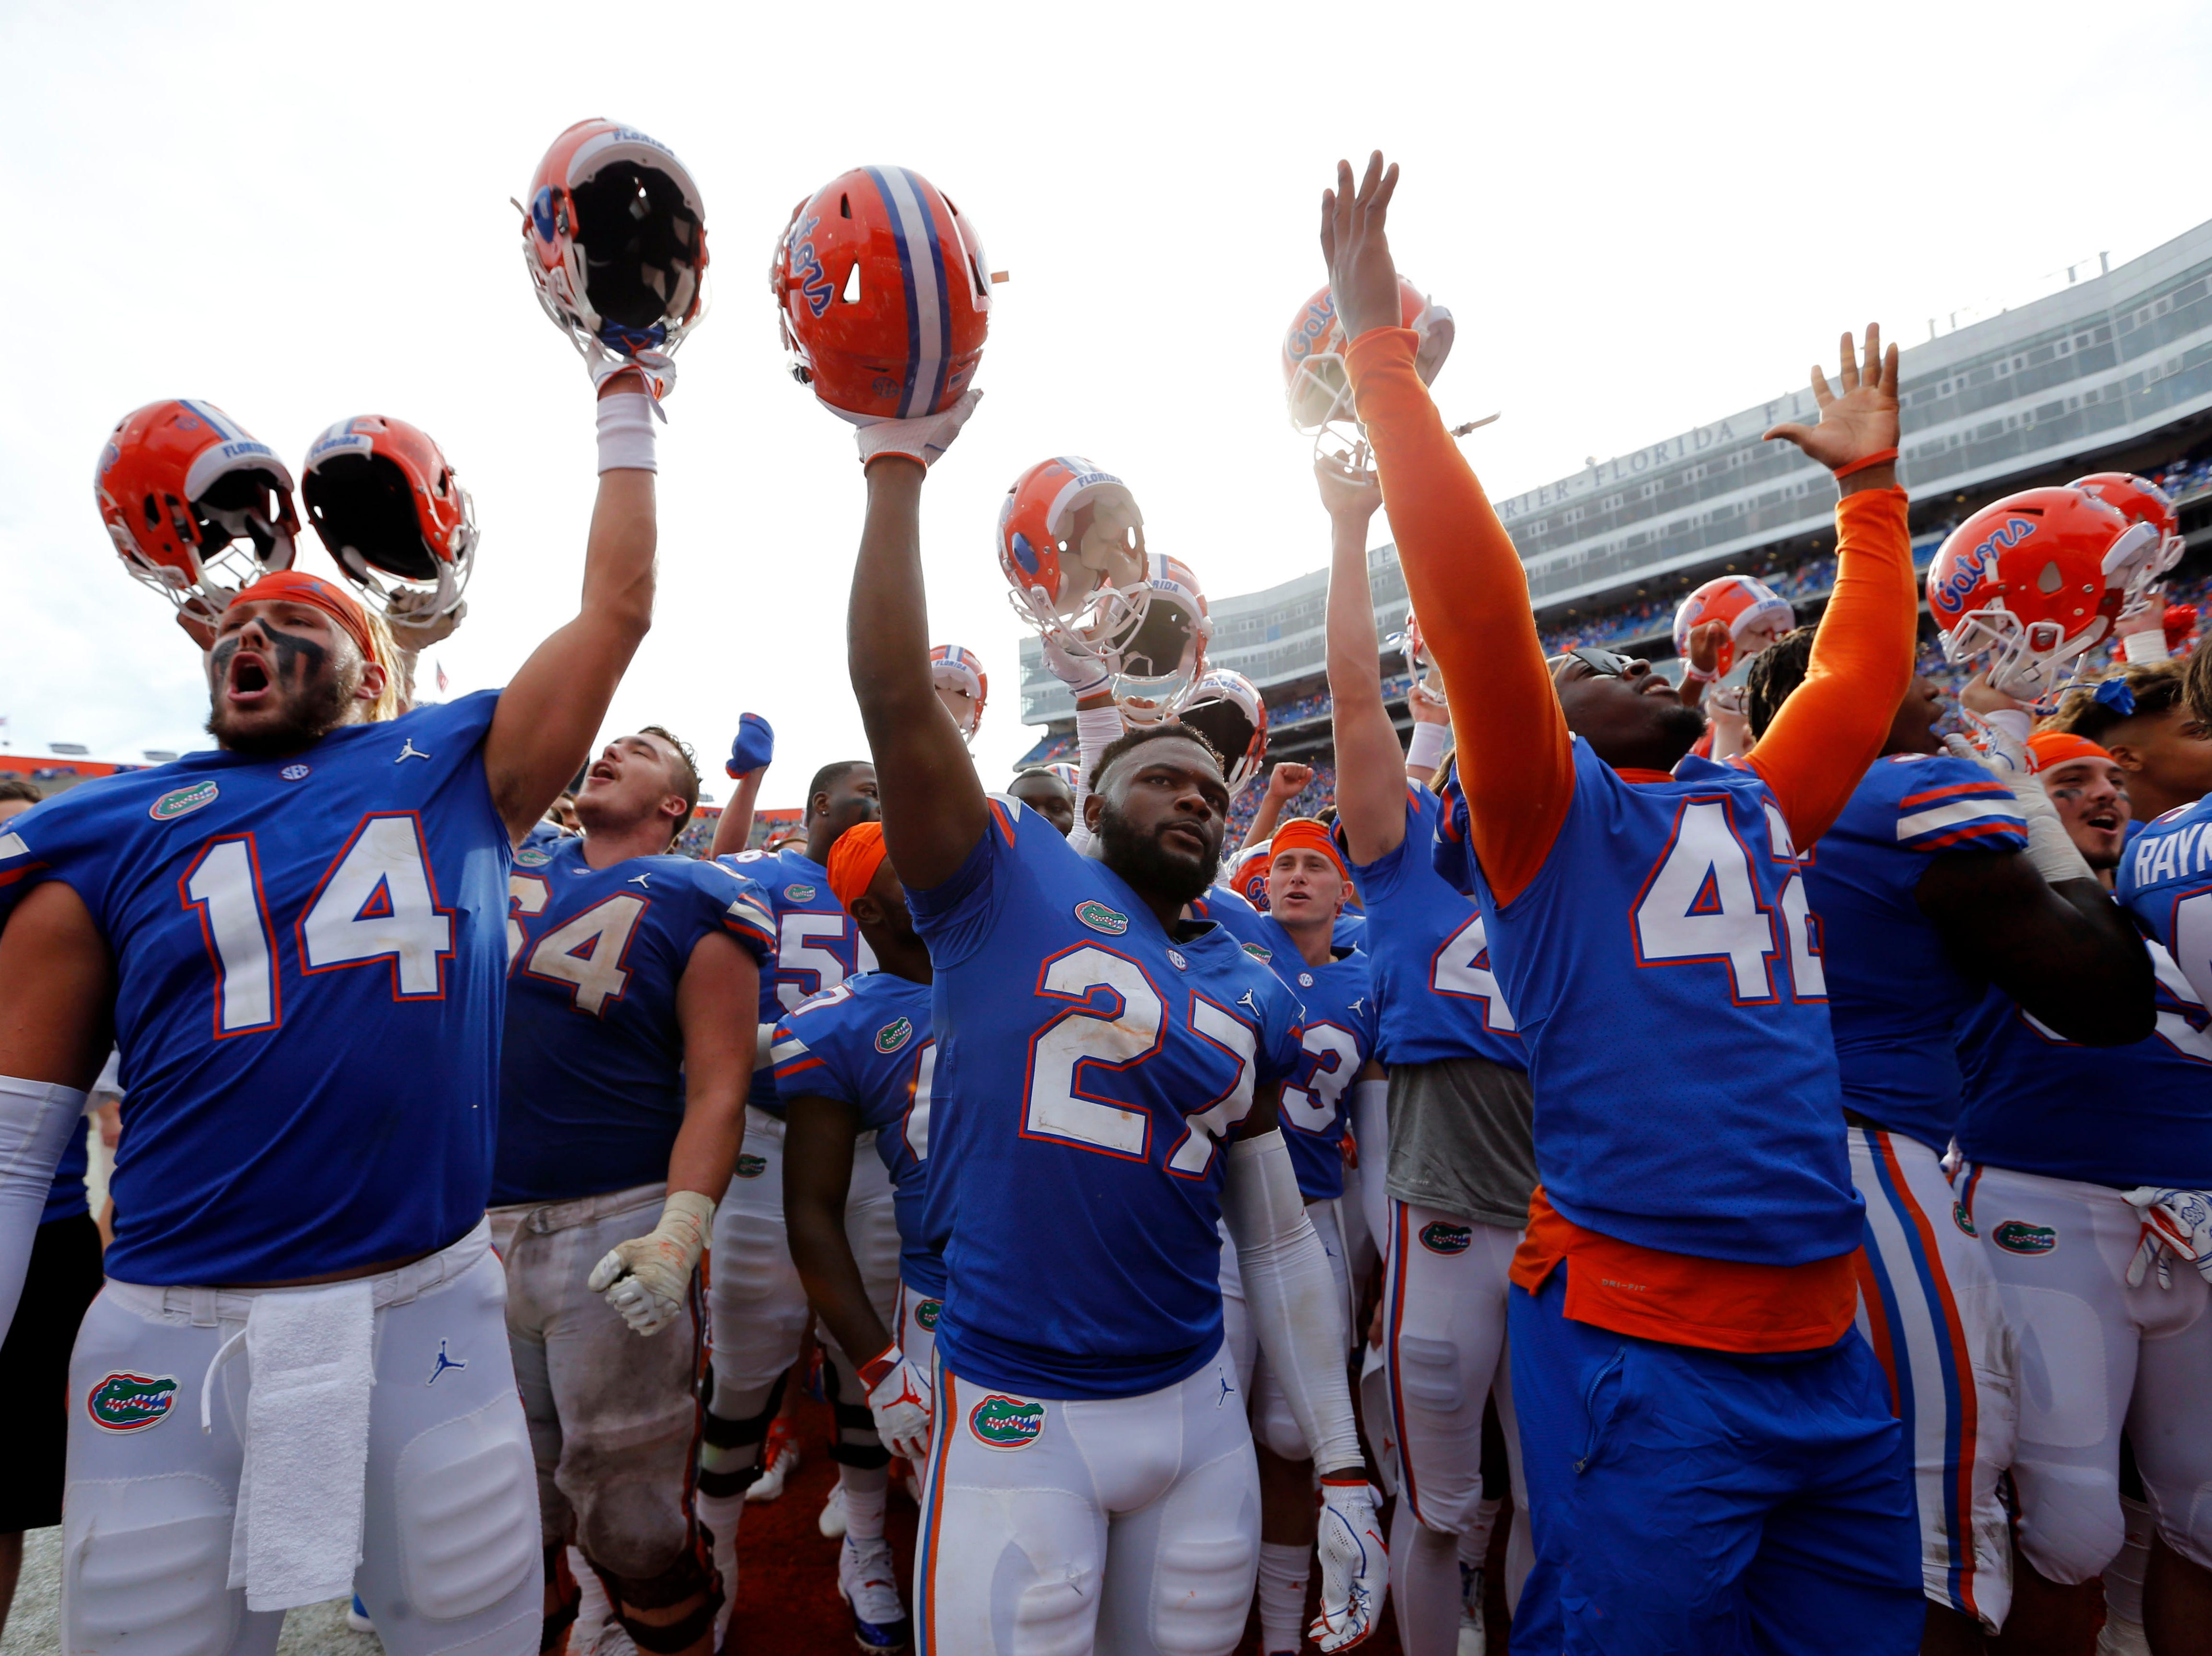 Florida Gators tight end Lucas Krull (14), running back Dameon Pierce (27) and teammates celebrate as they beat the South Carolina Gamecocks at Ben Hill Griffin Stadium.